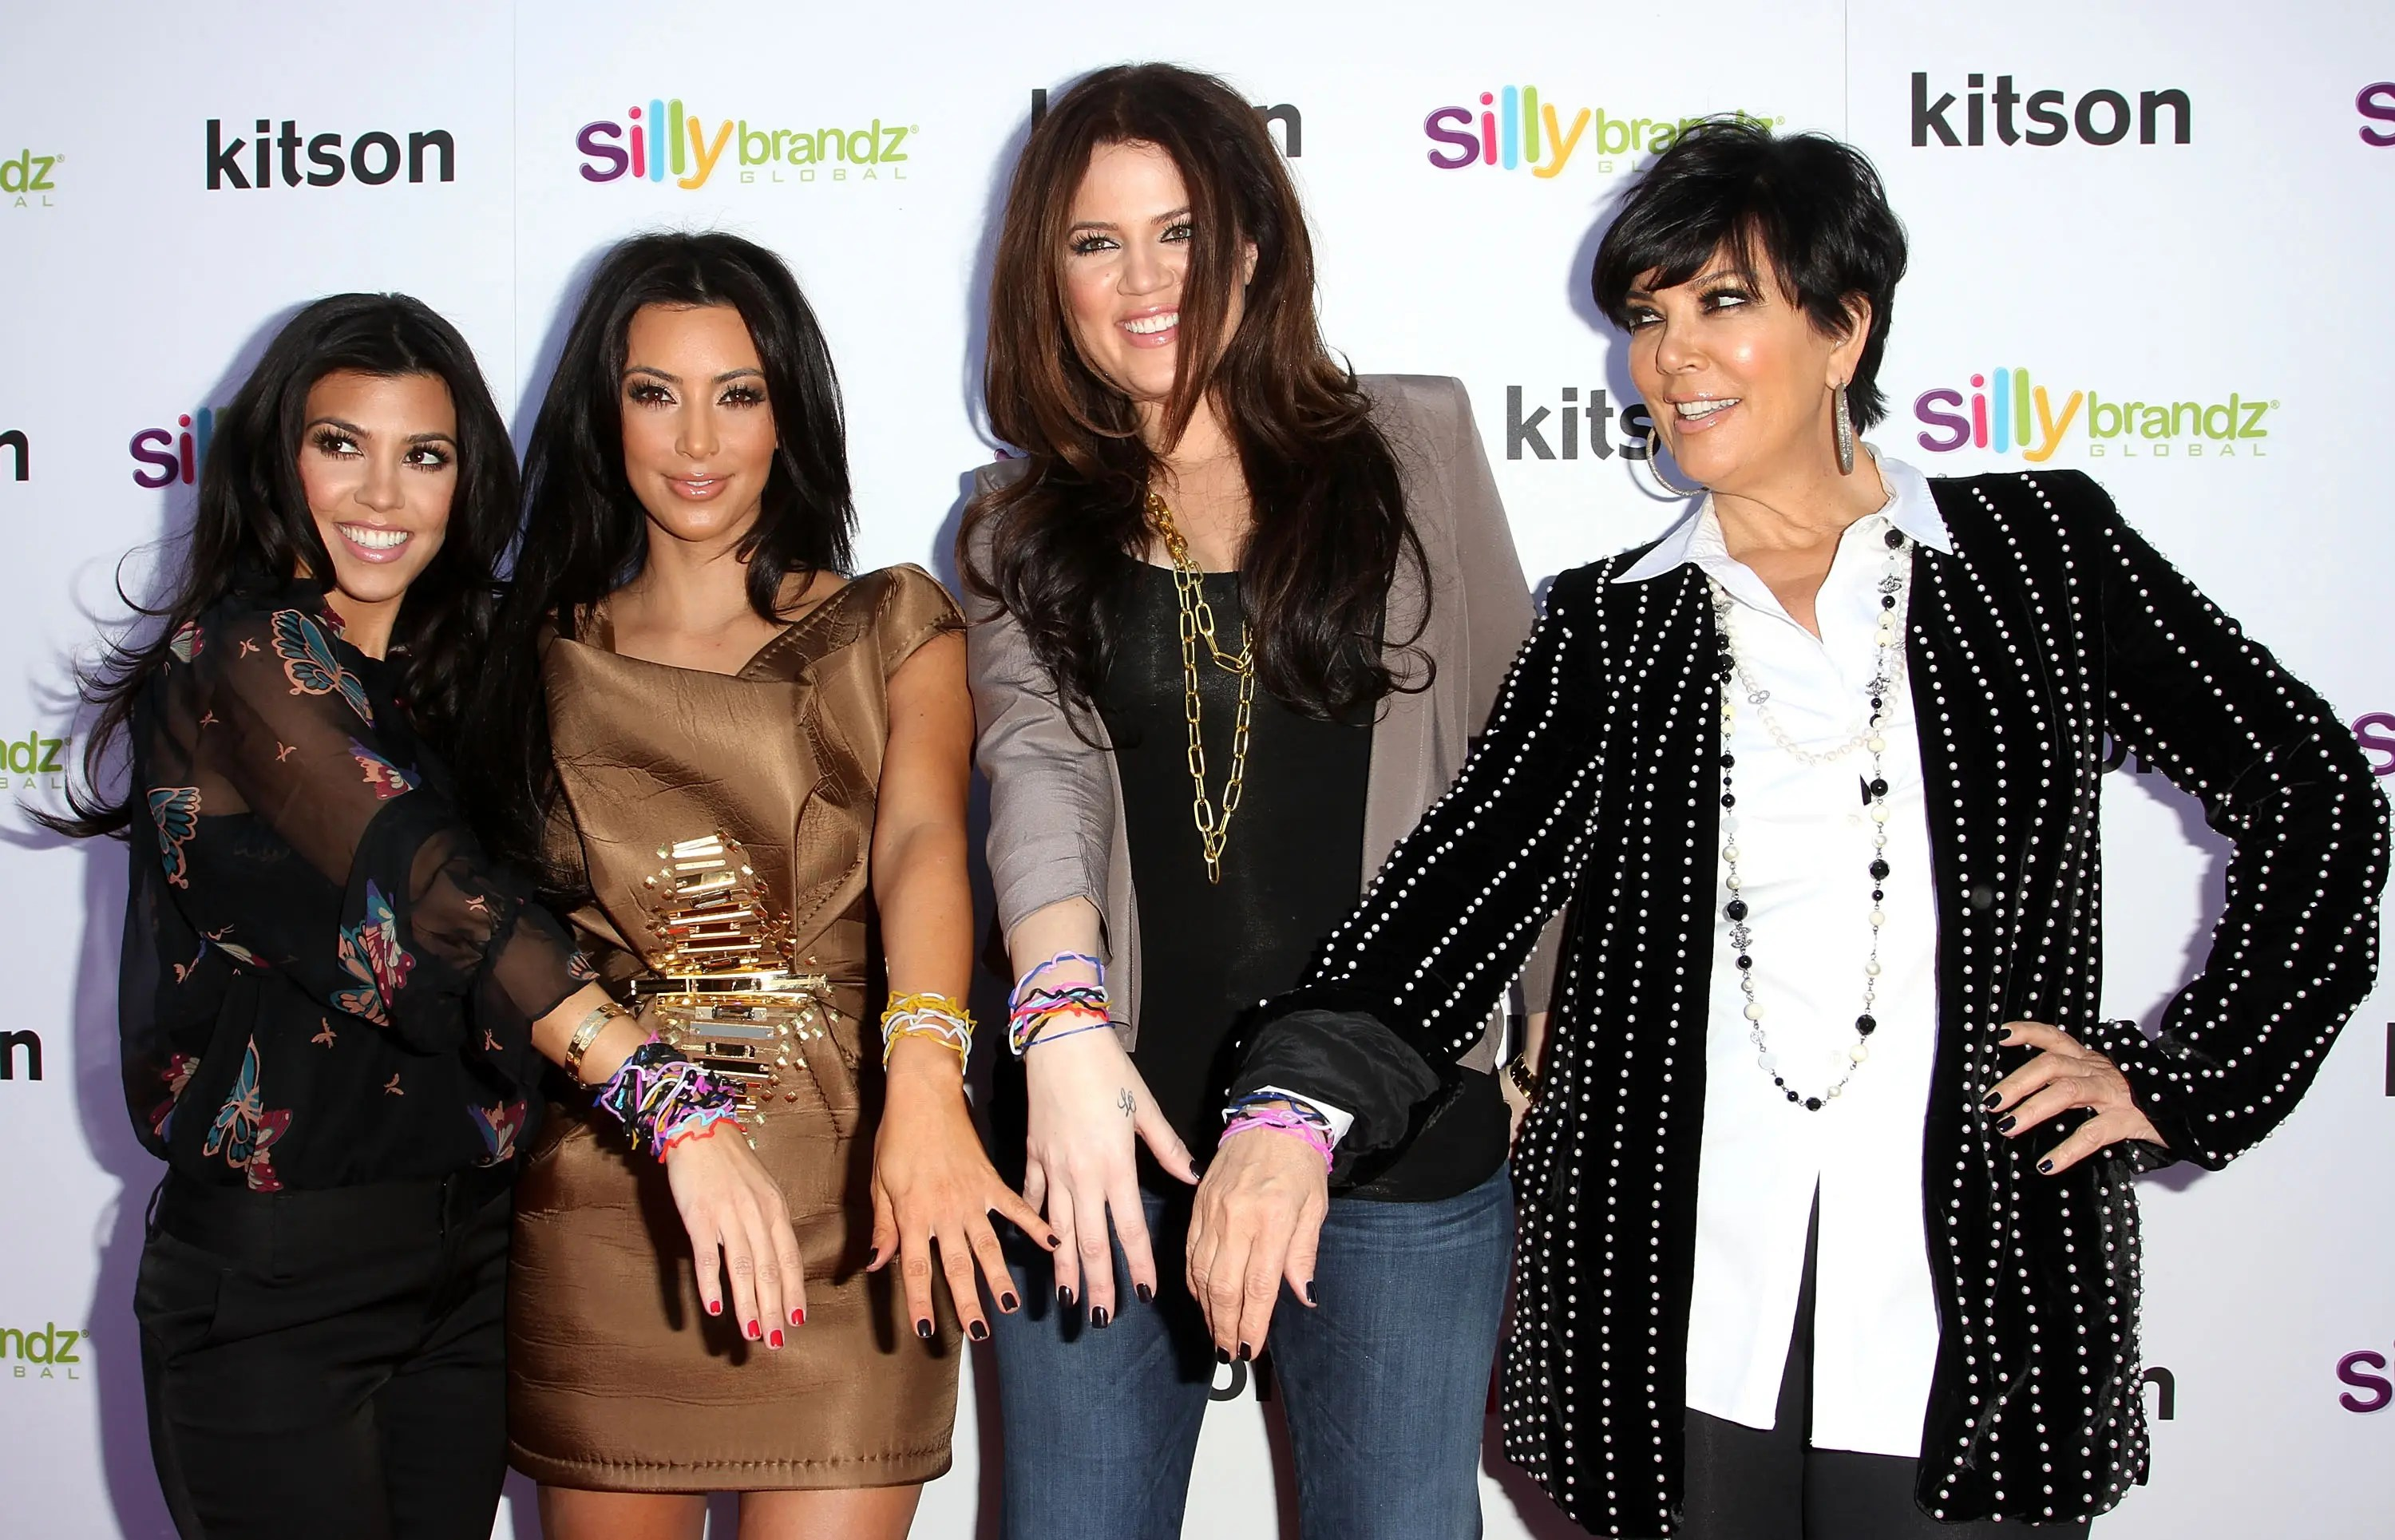 KRIS JENNER Stay At Home Mom To Millionaire Manager